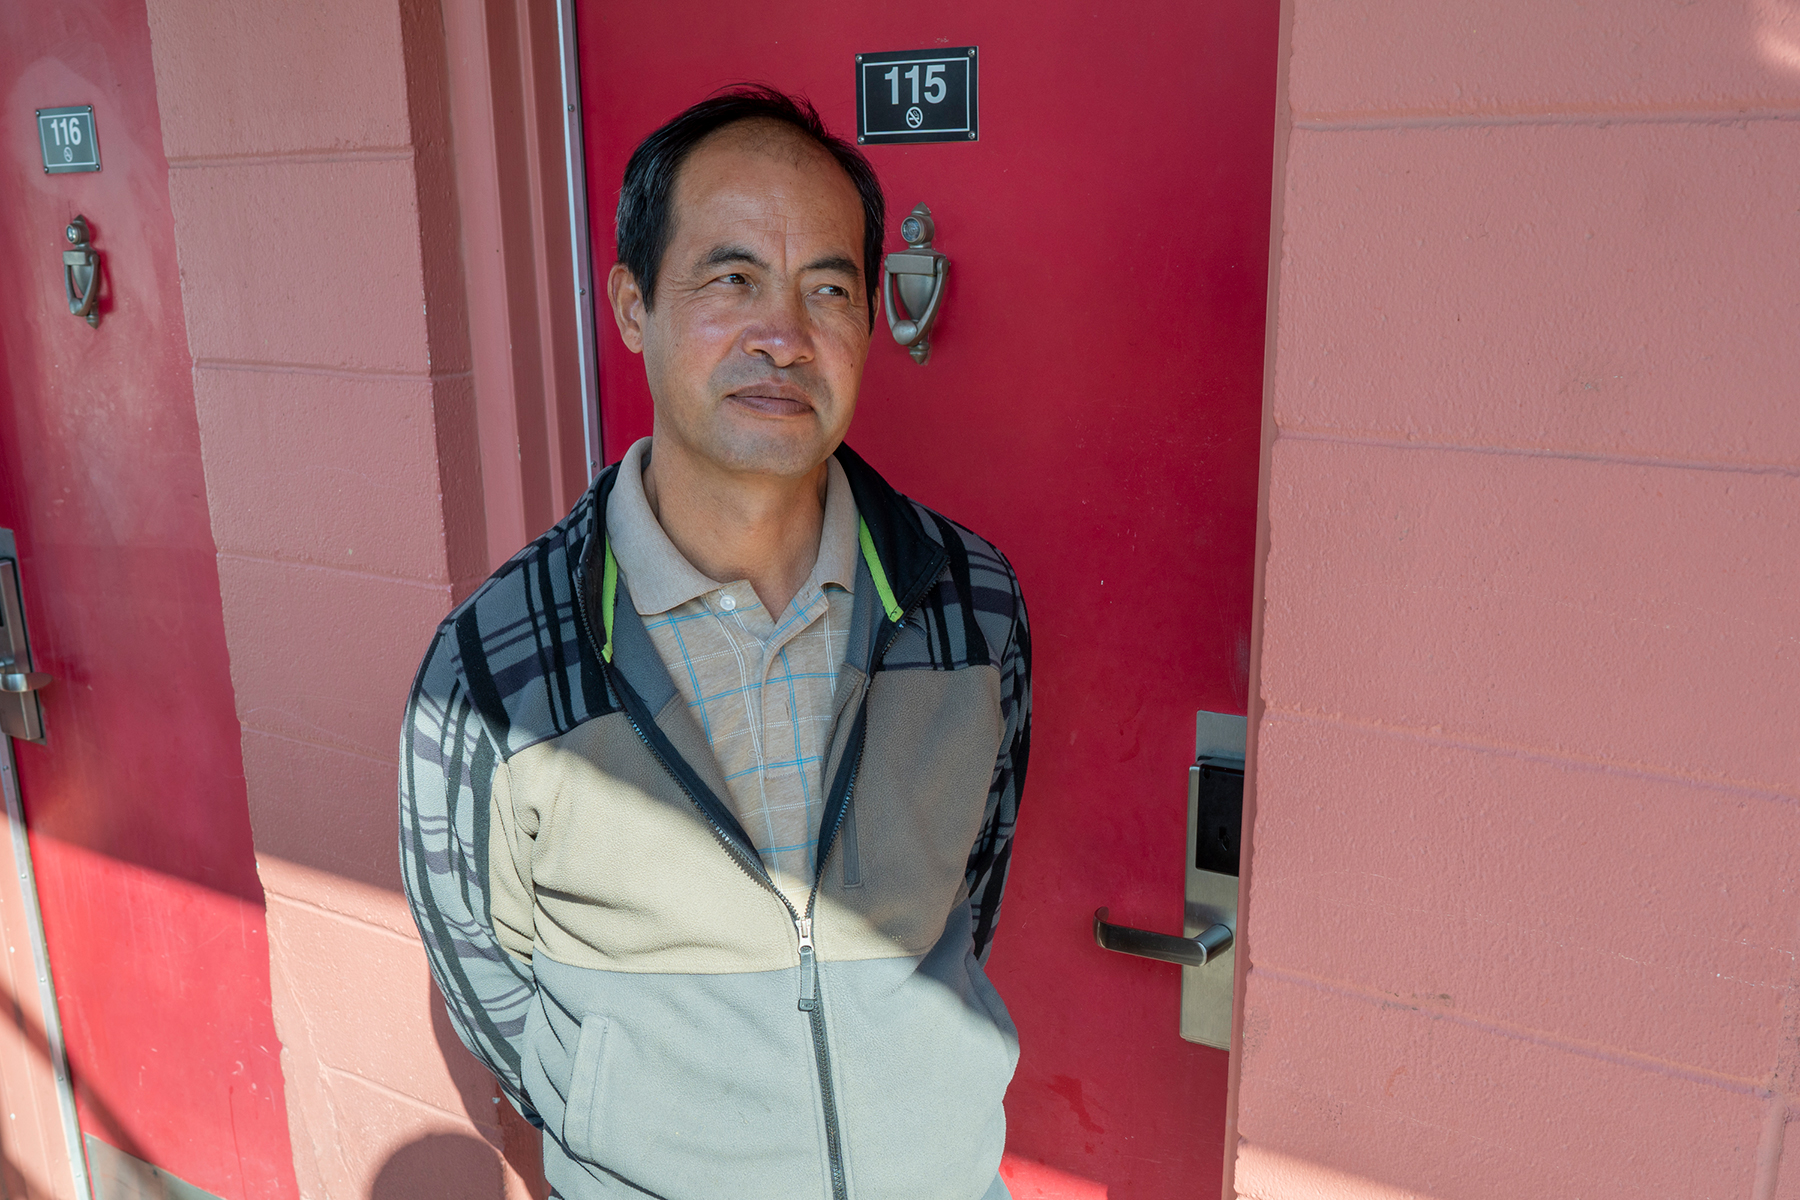 "Qinliang Wang in front of his room at a motel in Farmington, where he came to do what he thought was legal ""flower trimming"" after being out of the workforce since March. Two days later, he was arrested in the room while pruning marijuana."